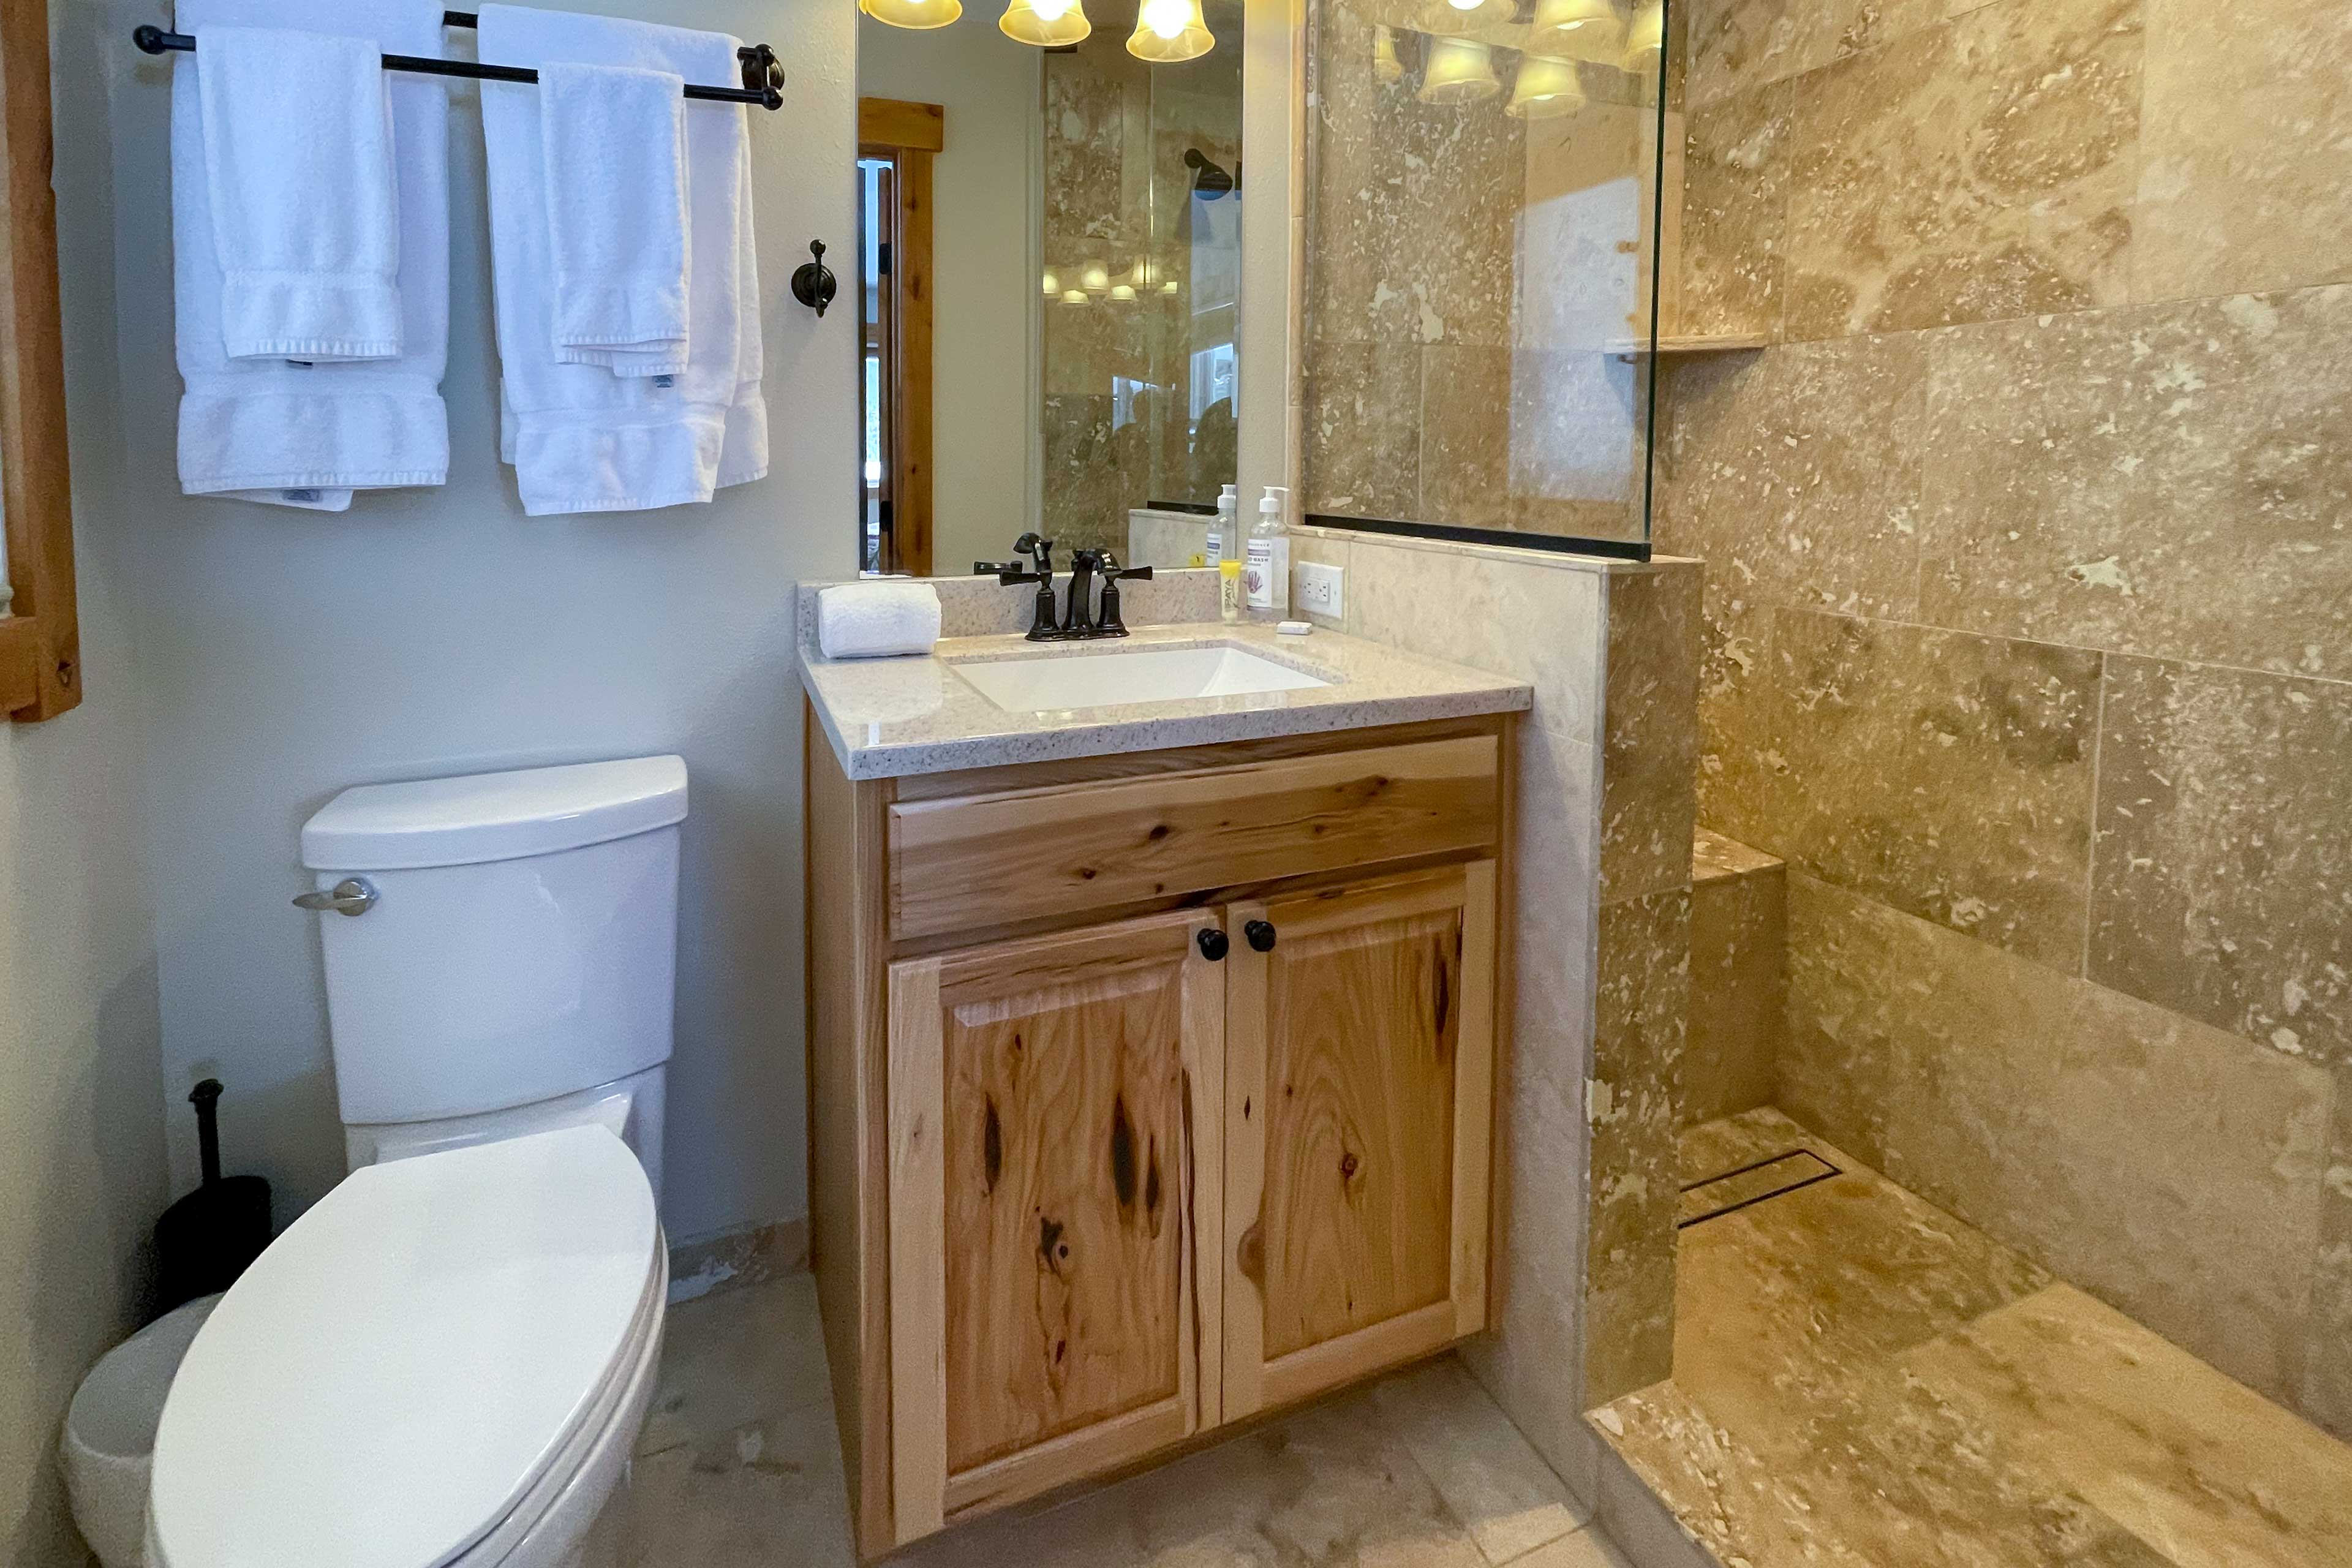 Freshen up in this newly remodeled bathroom.